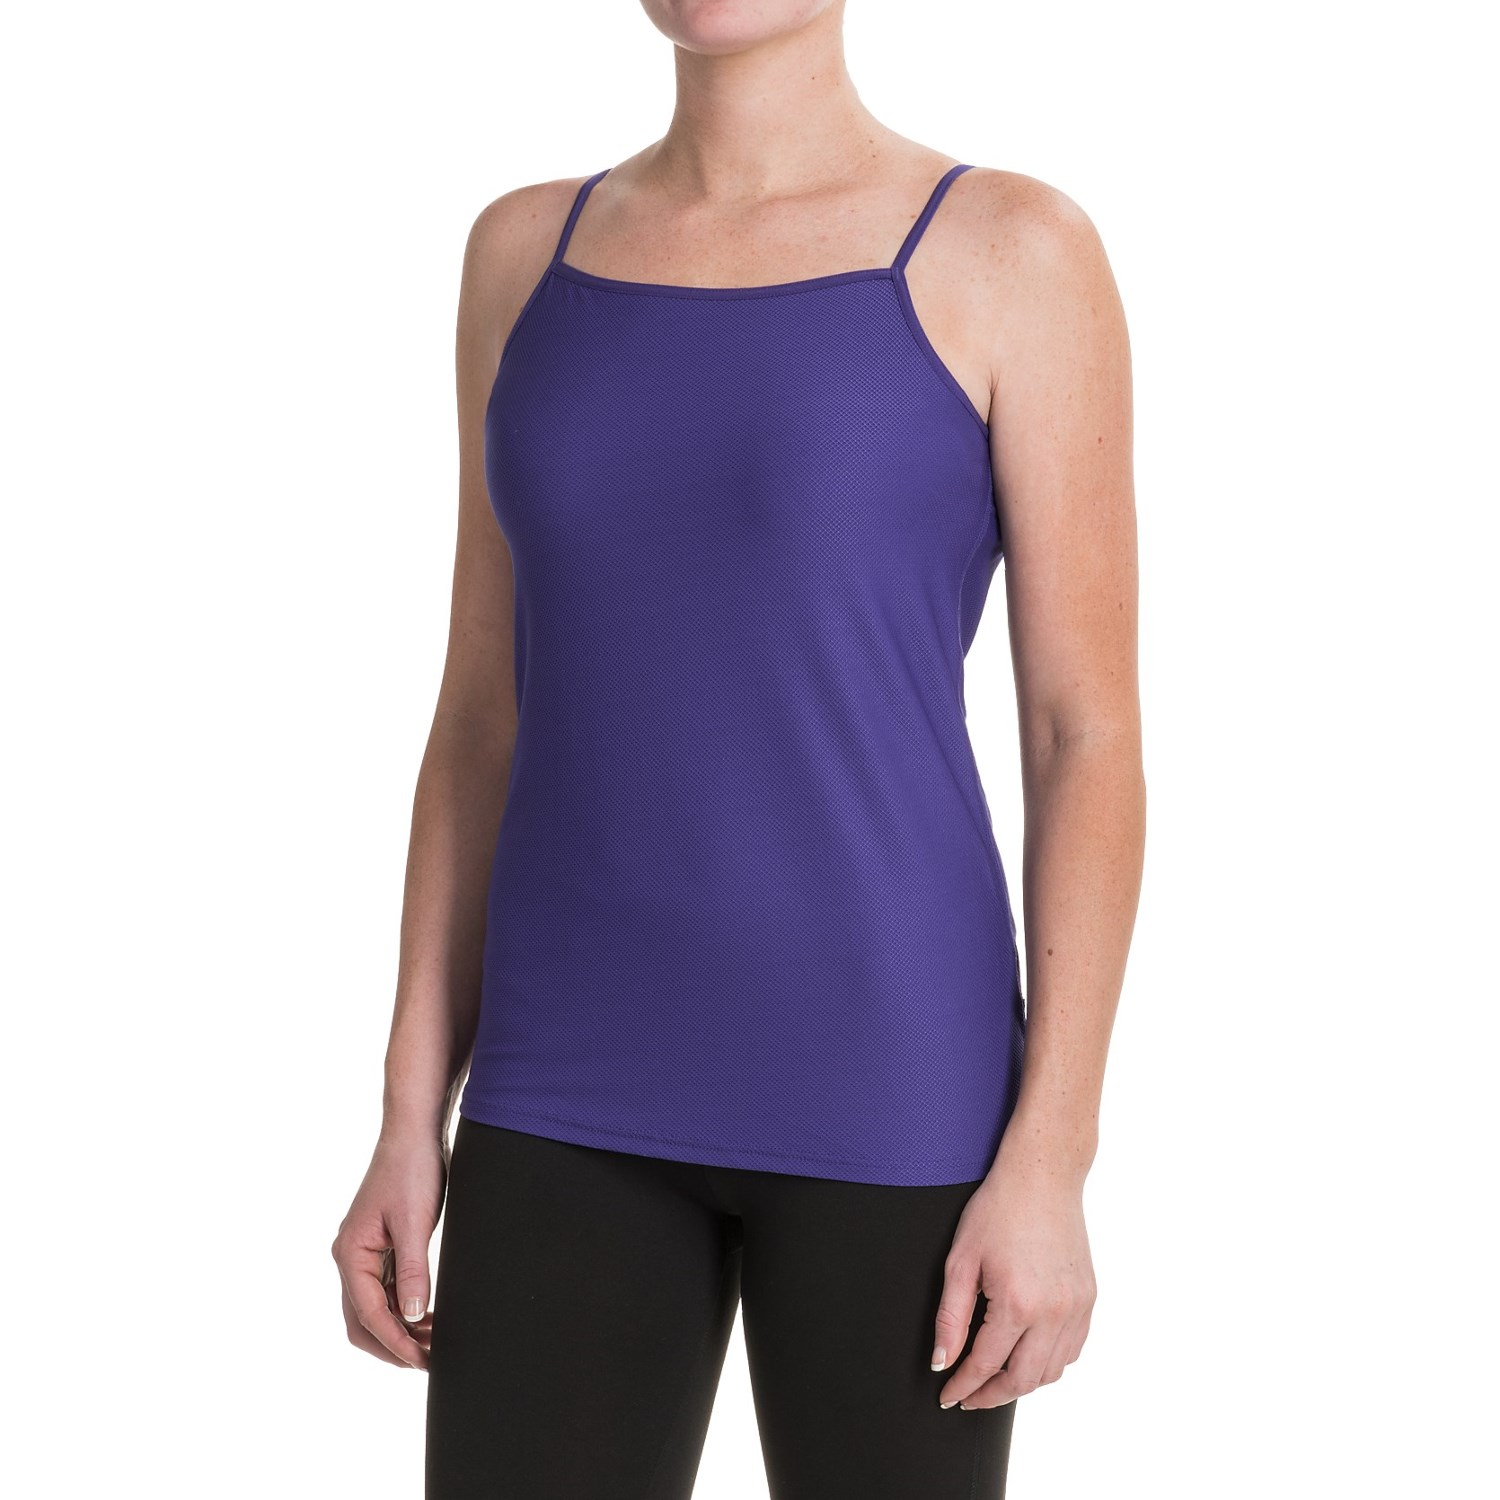 list with style bra cotton camisoles best shelf in top rank tank built stretch hanes cami